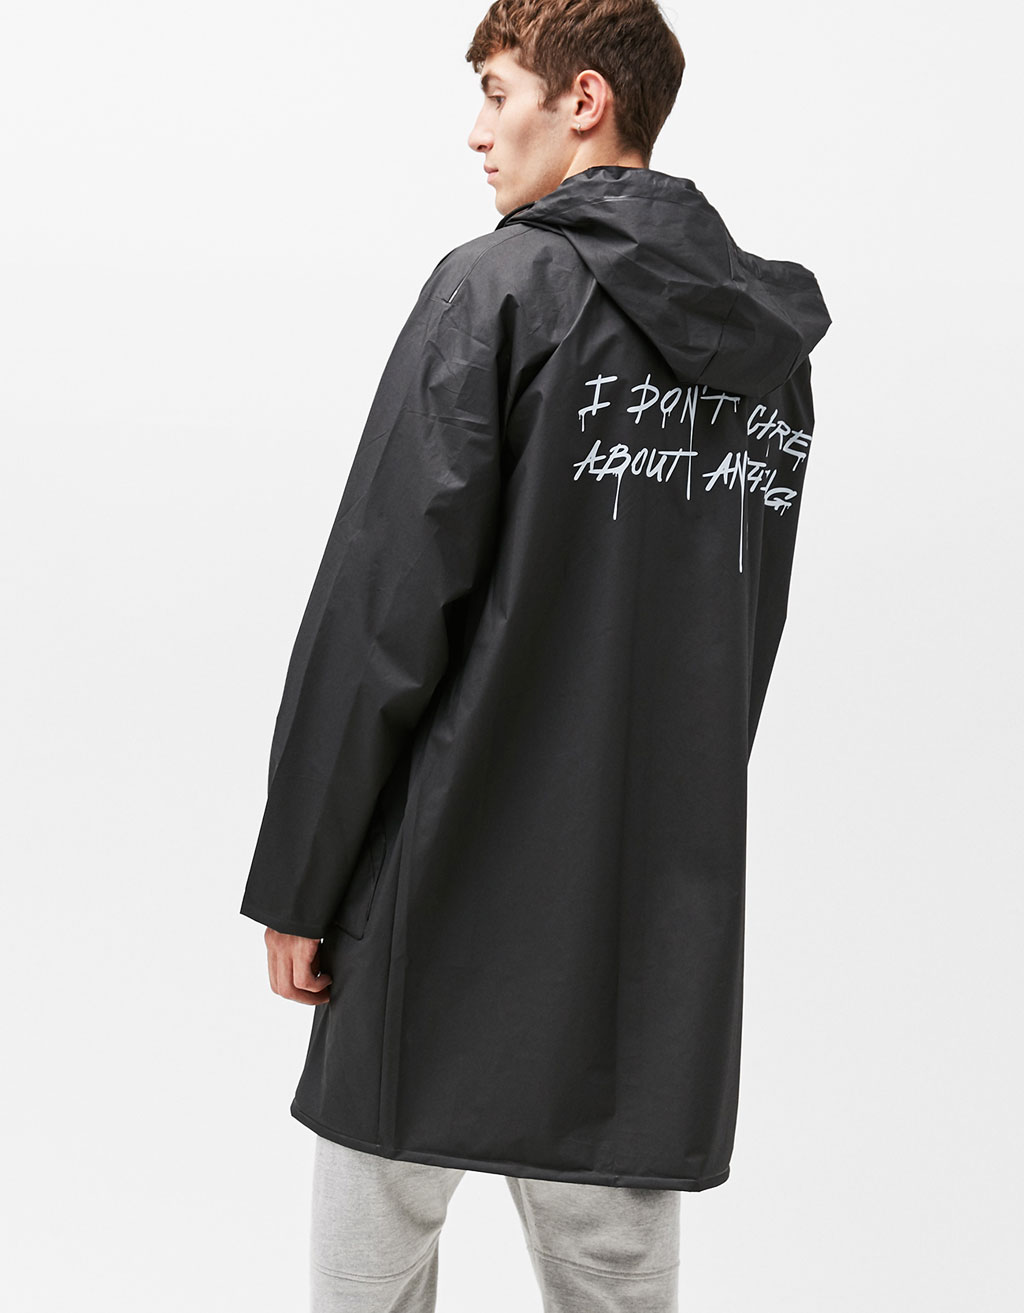 Roll-up raincoat